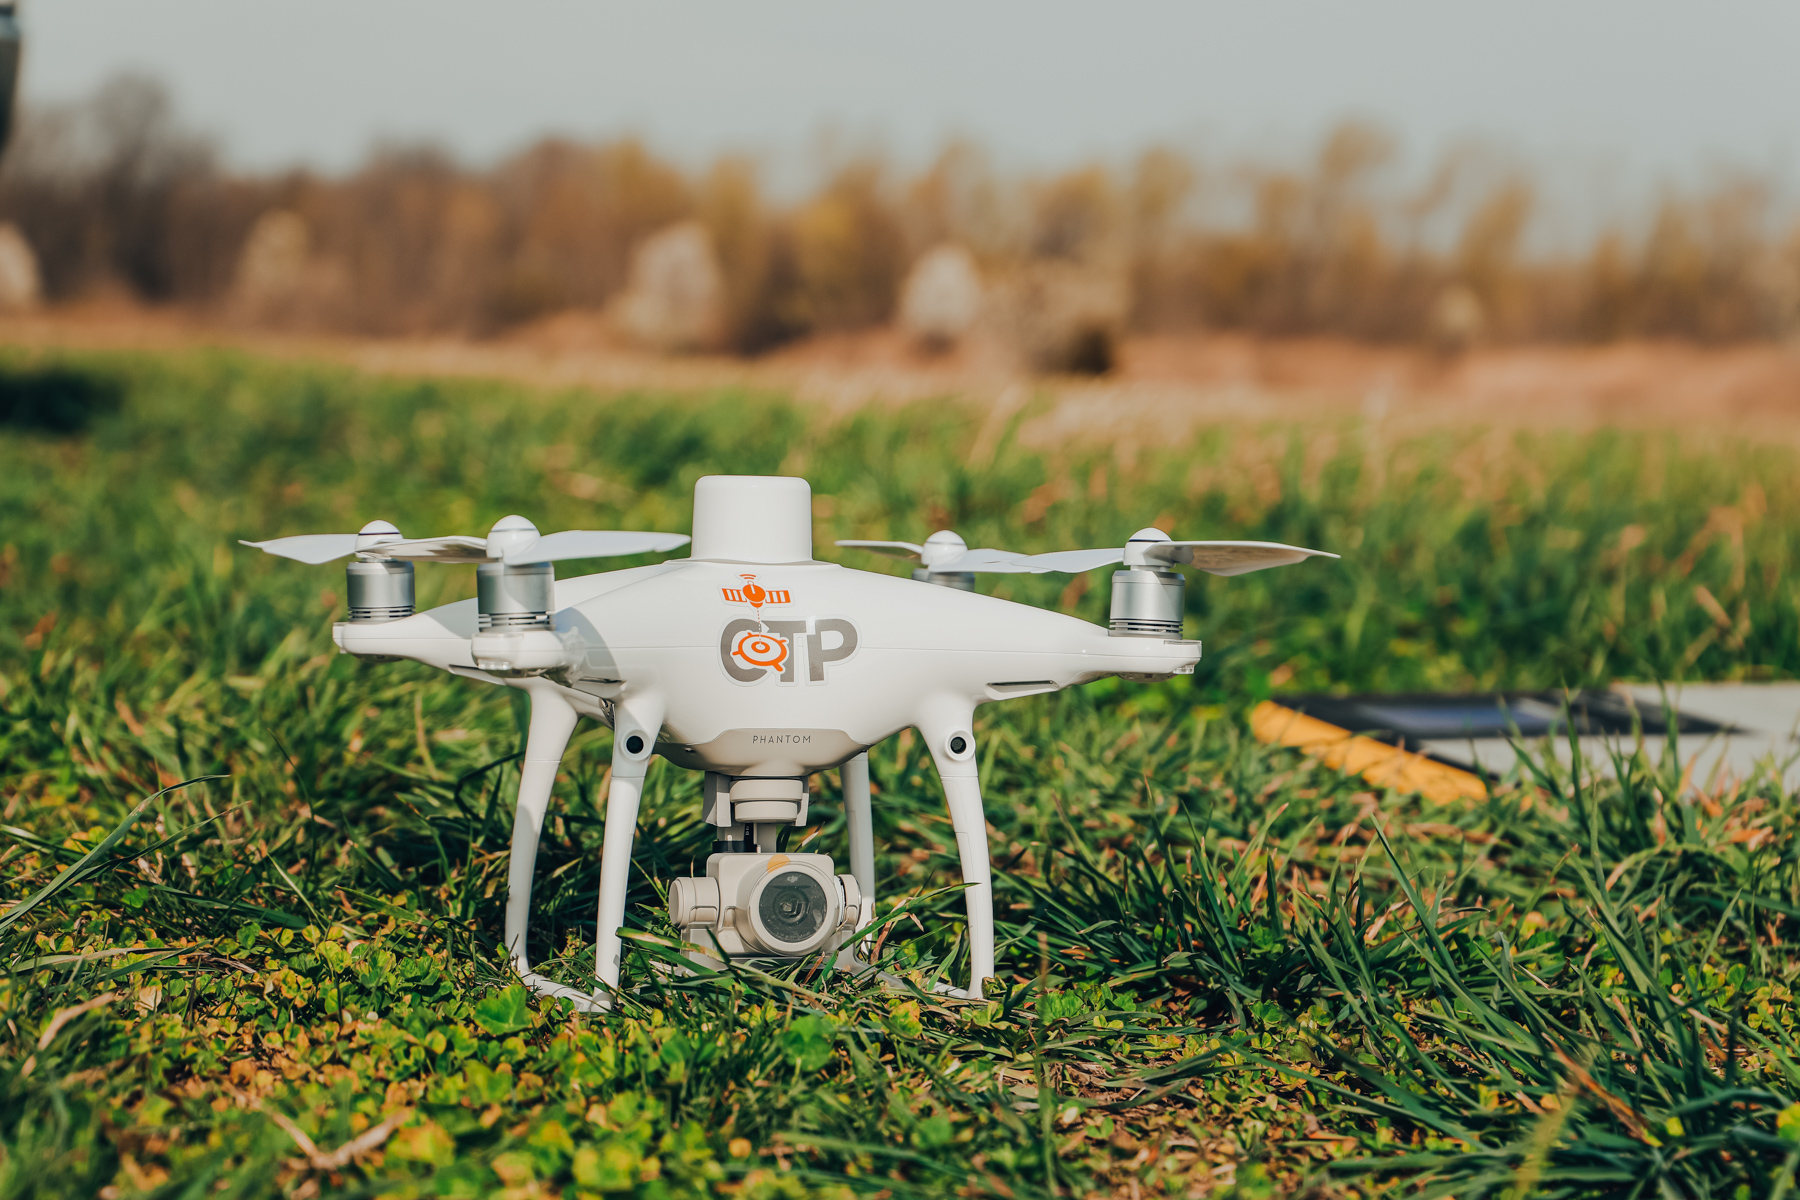 CTP also offers aerial drone mapping services.